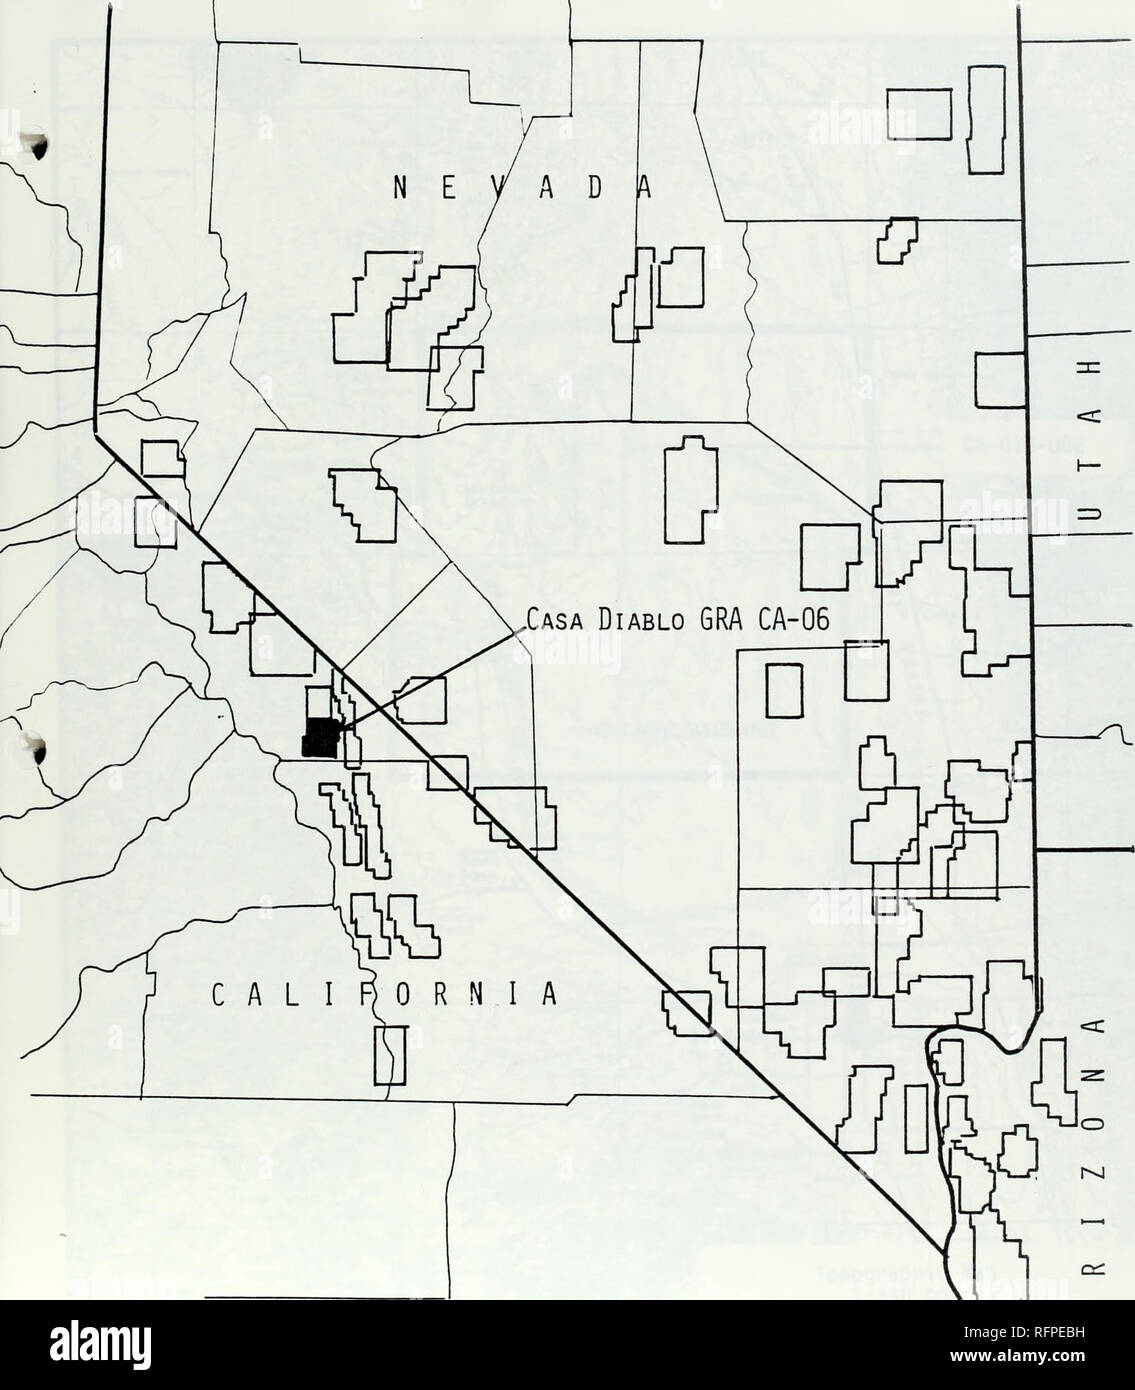 Casa Diablo G E M Resources Area Gra No Ca 06 Technical Report